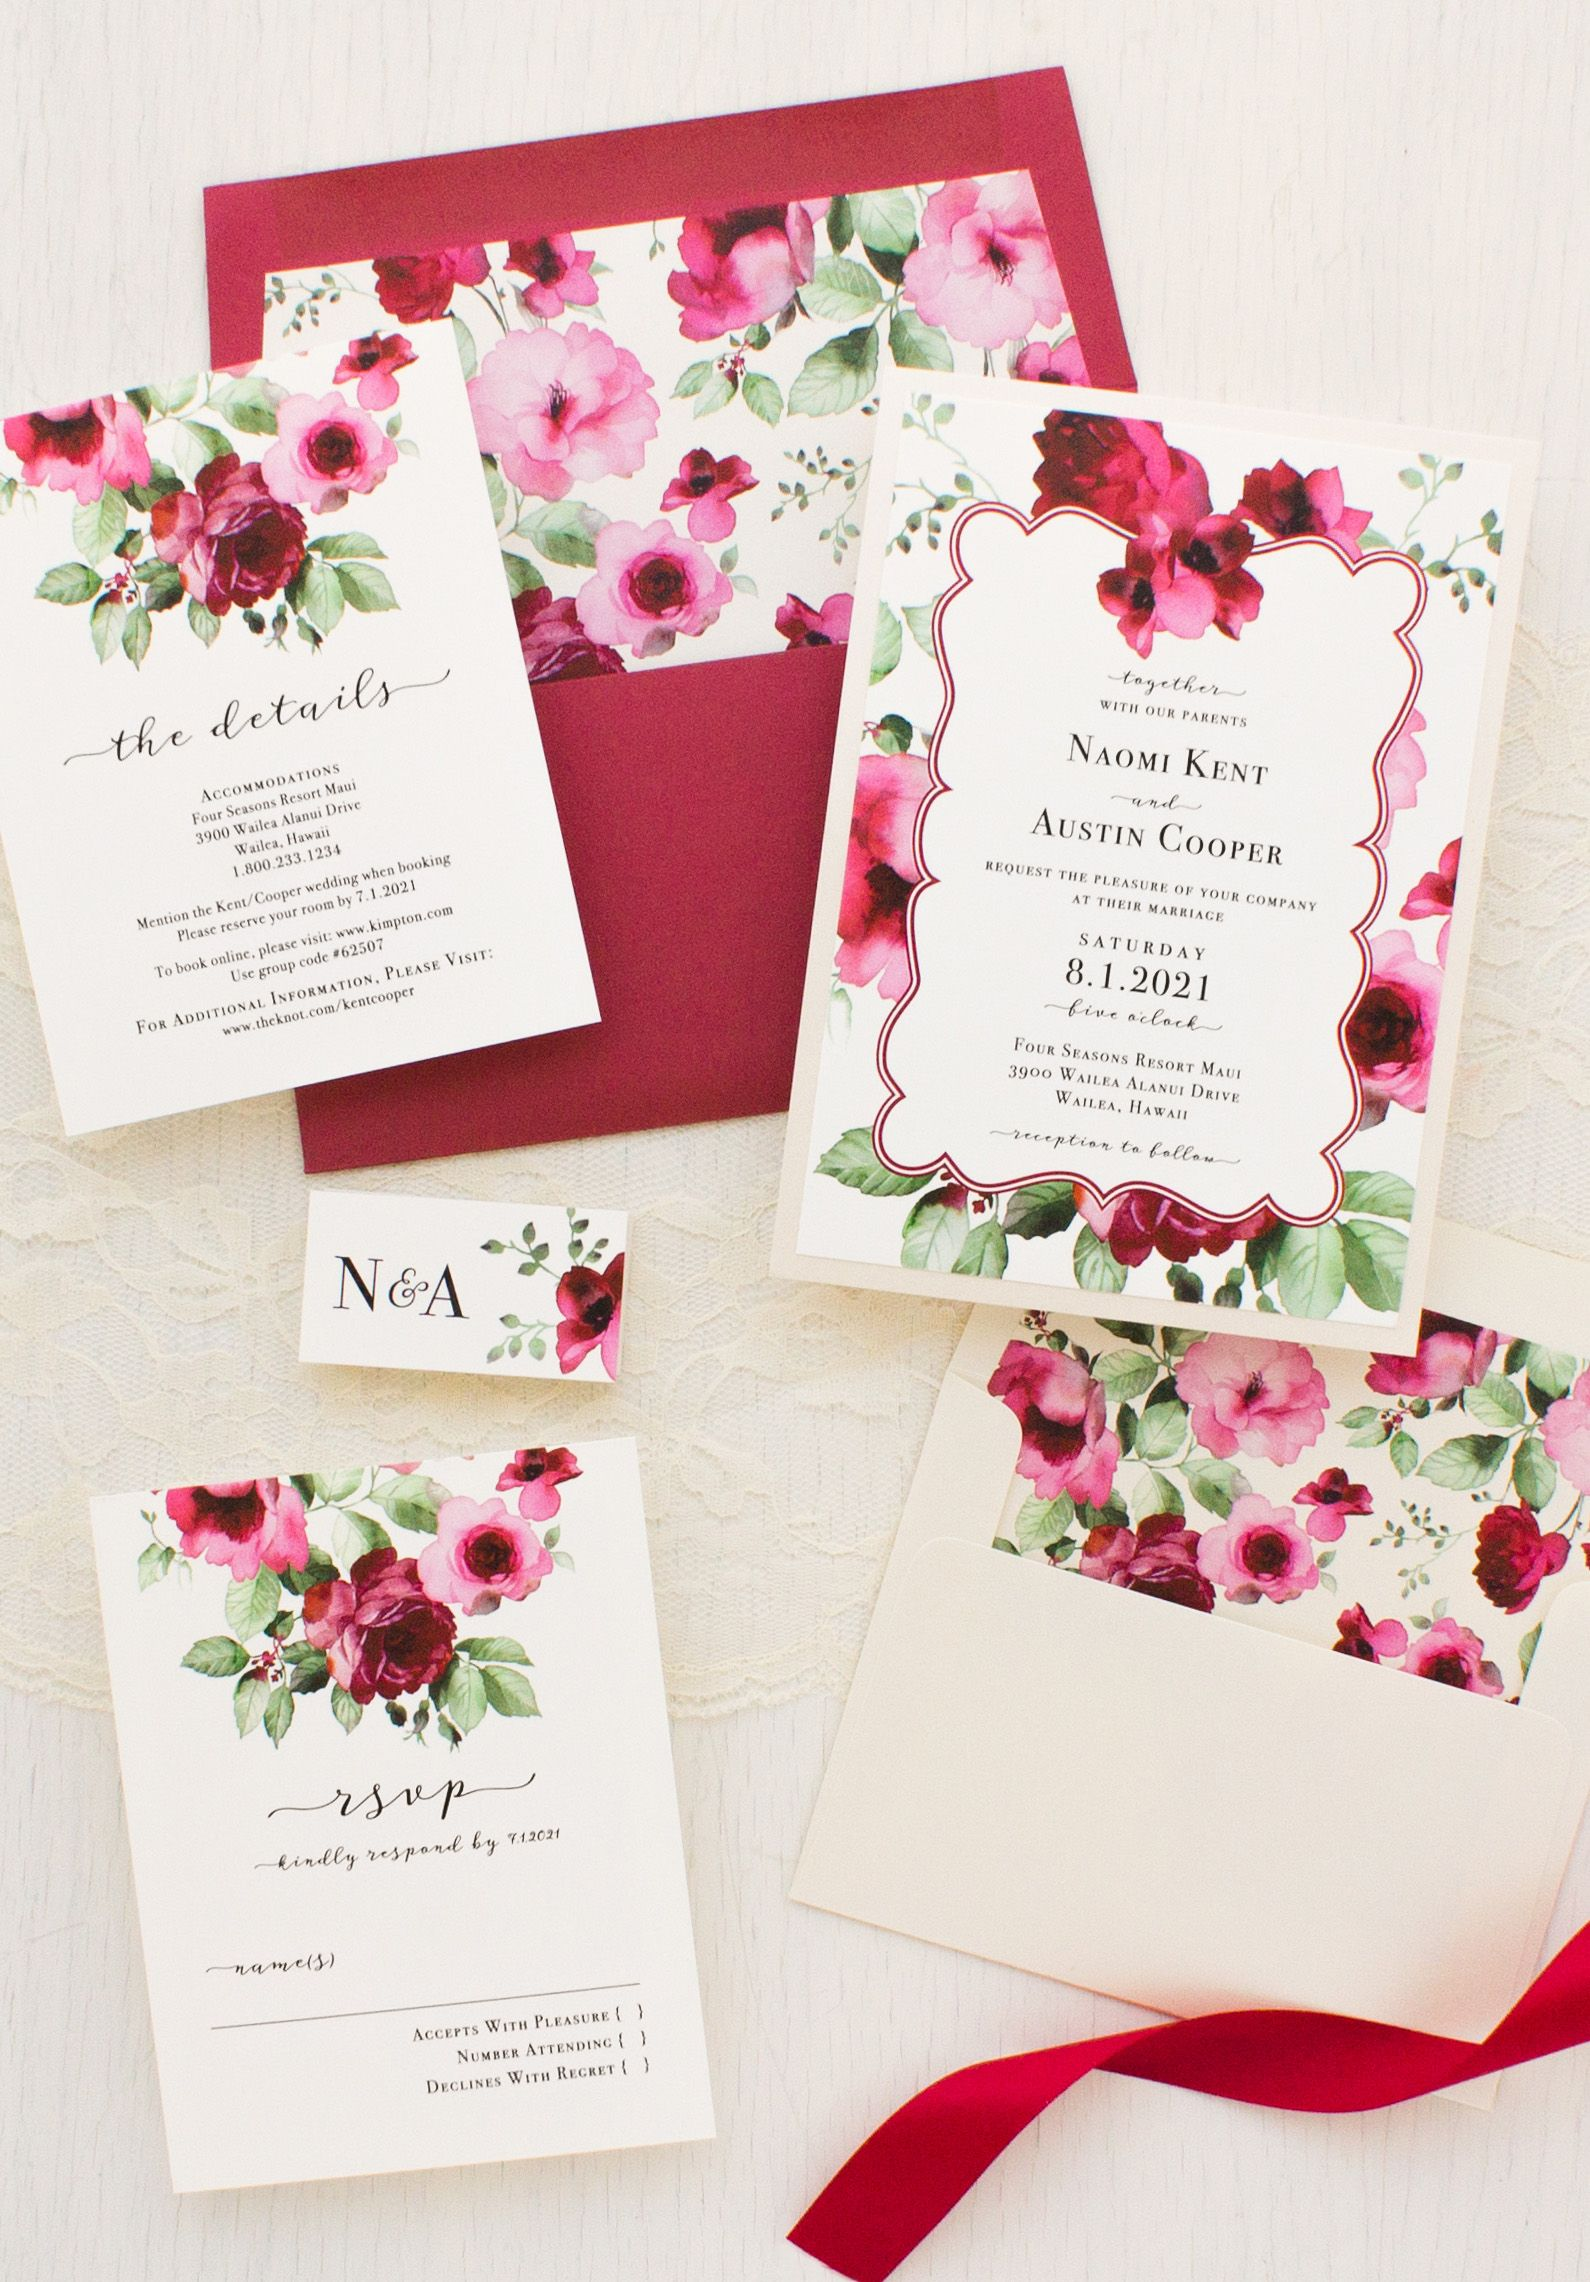 Cranberry Crush Wedding Invitations | Invitation design, Floral ...